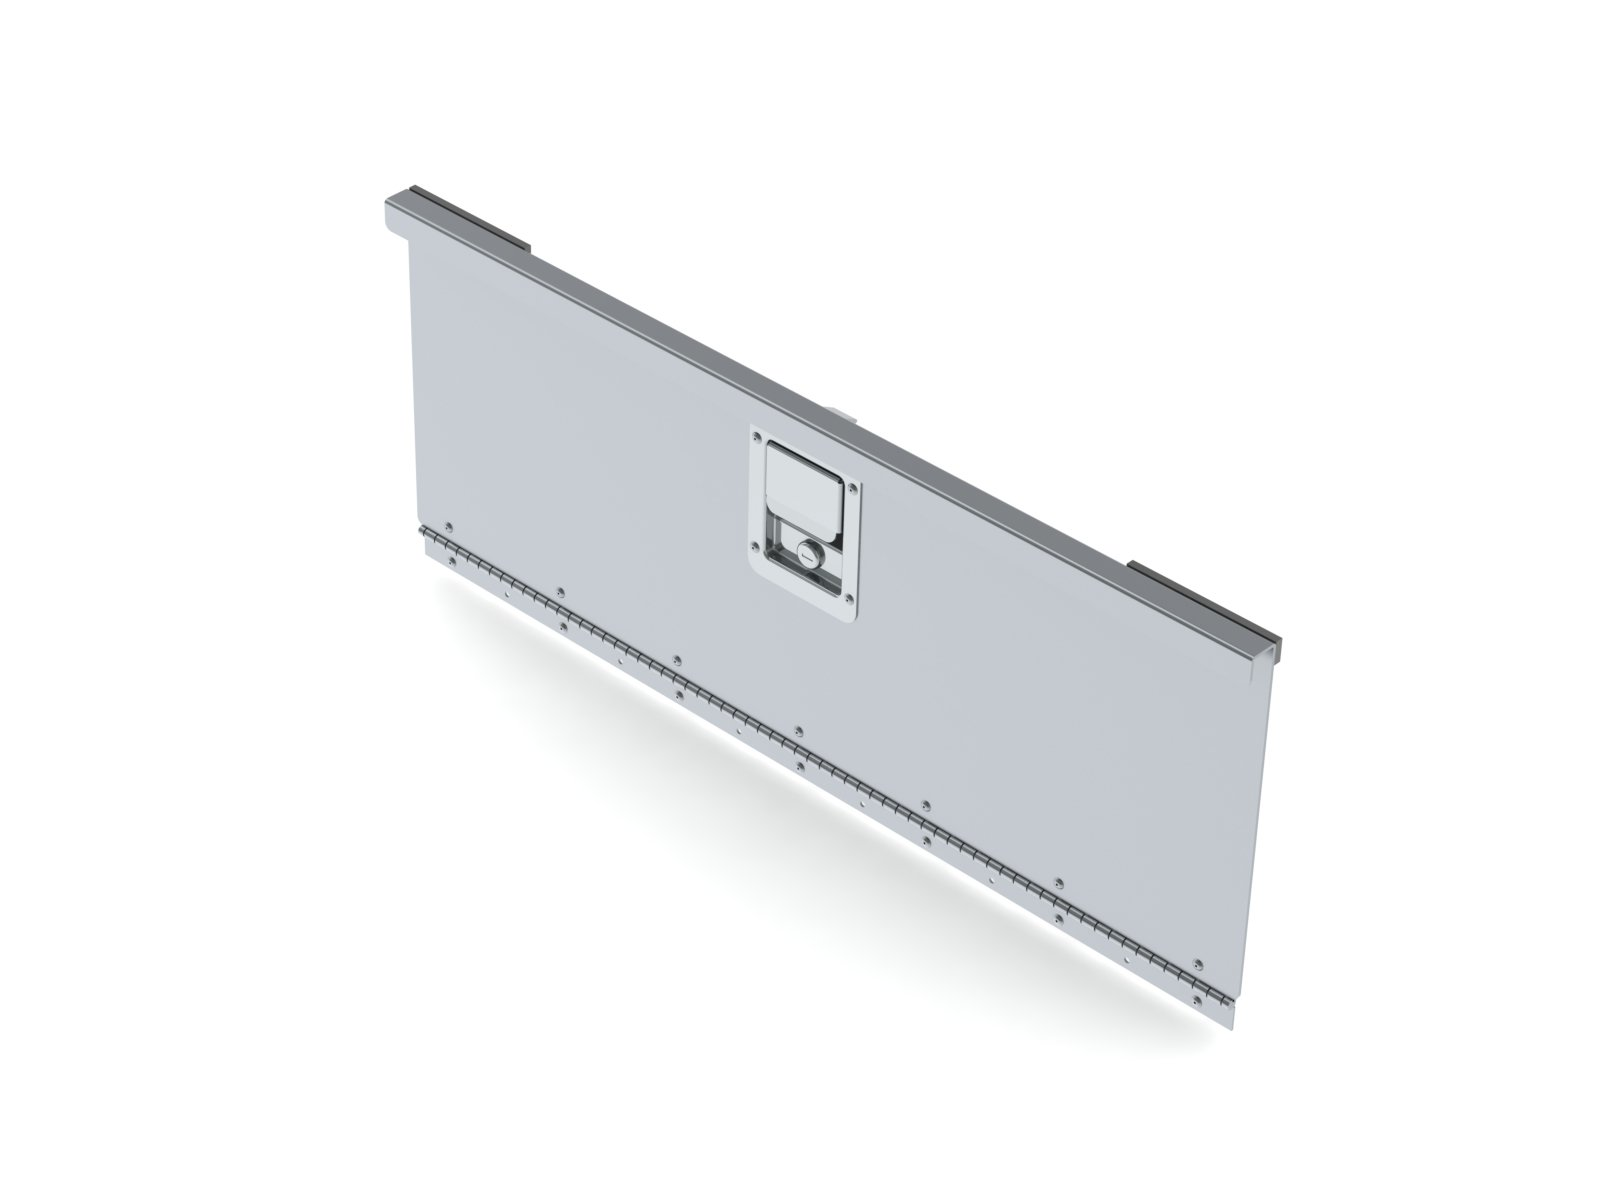 Ranger Design Lockable Aluminum Door (32 7/8''w x 12 1/16''h),7733 by American Truck Equipment